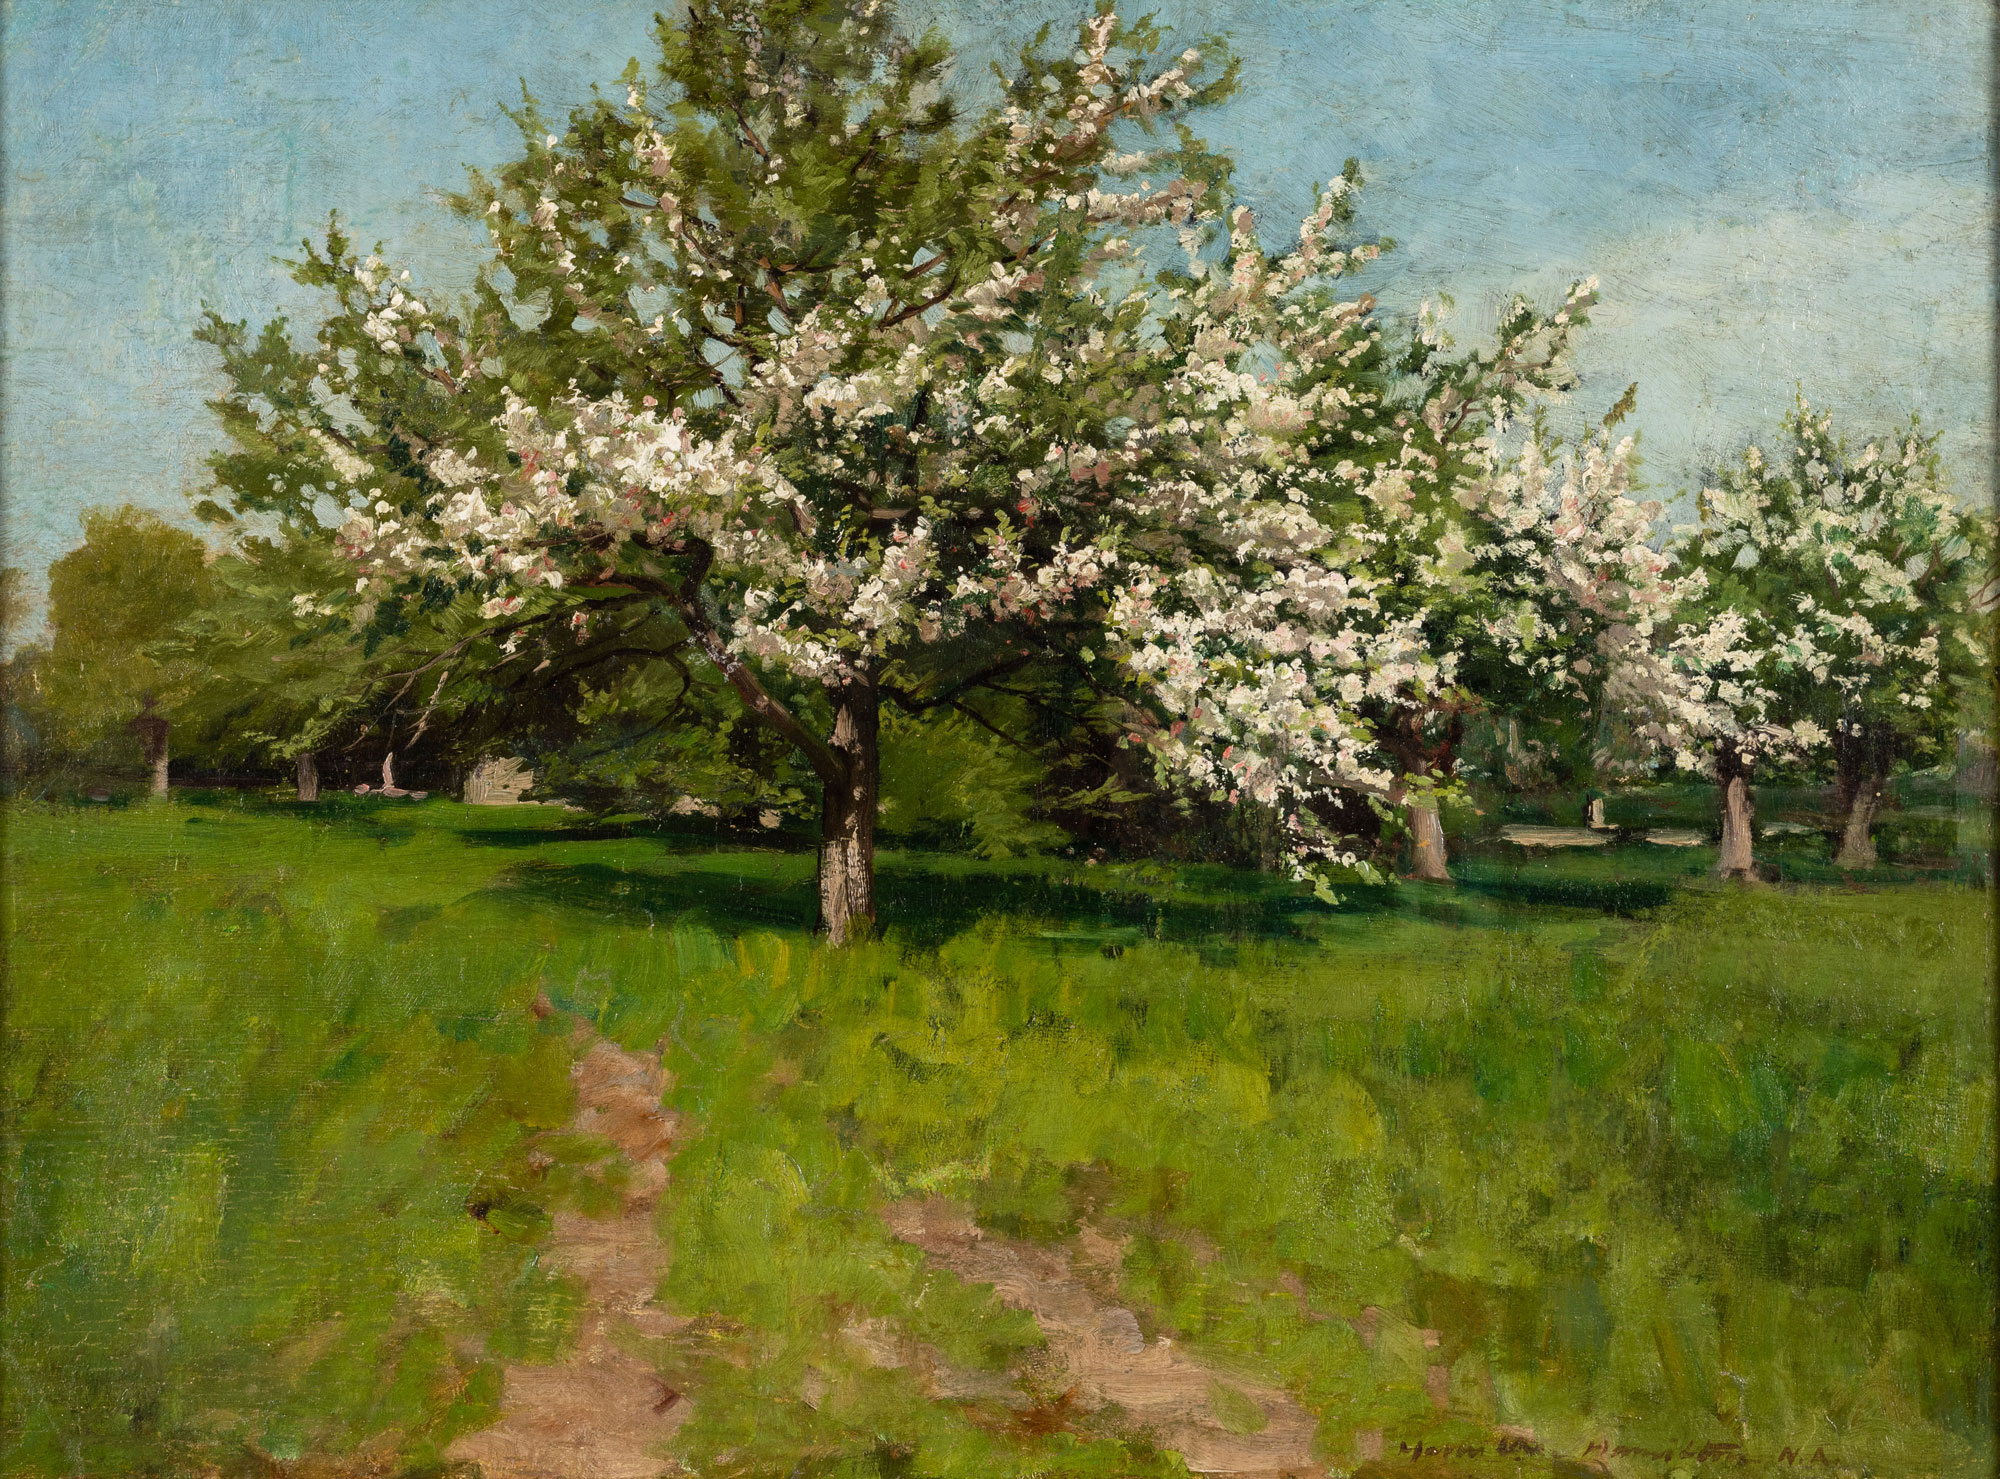 A landscape painting of a lush apple orchard in spring.